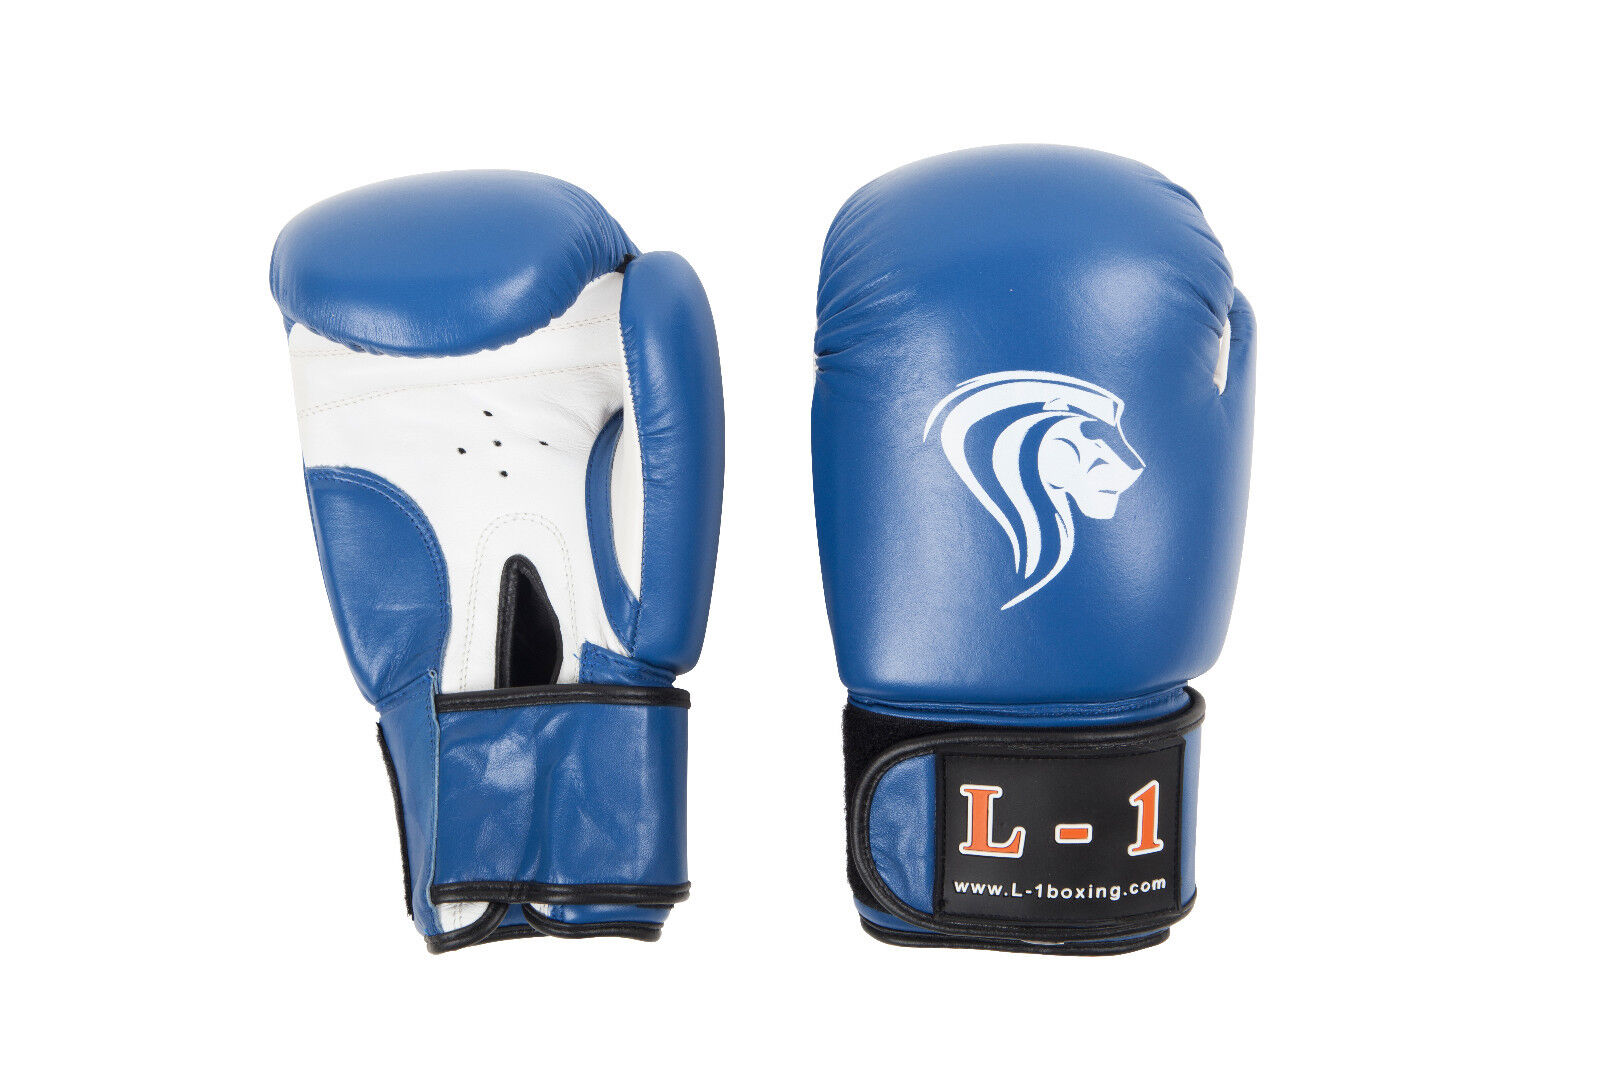 Boxing SPARRING Training G  s in leather Training Fighting G s 10 OZ bluee  100% brand new with original quality